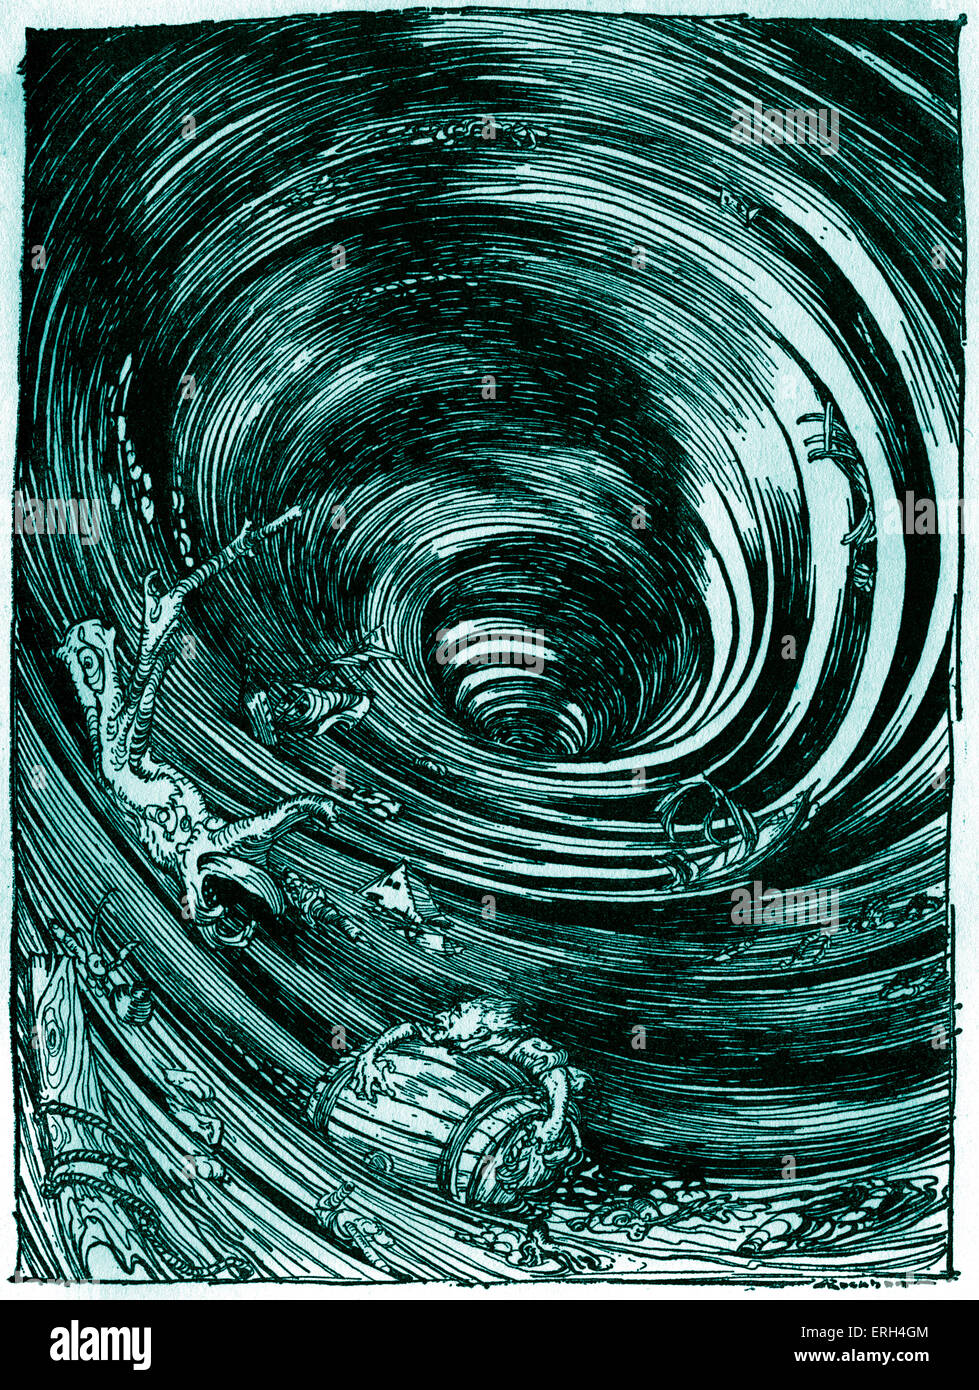 A Descent into the Maelstrom' by Edgar Allan Poe. Illustration by Arthur Rackham (1867 - 1939). EAP American - Stock Image